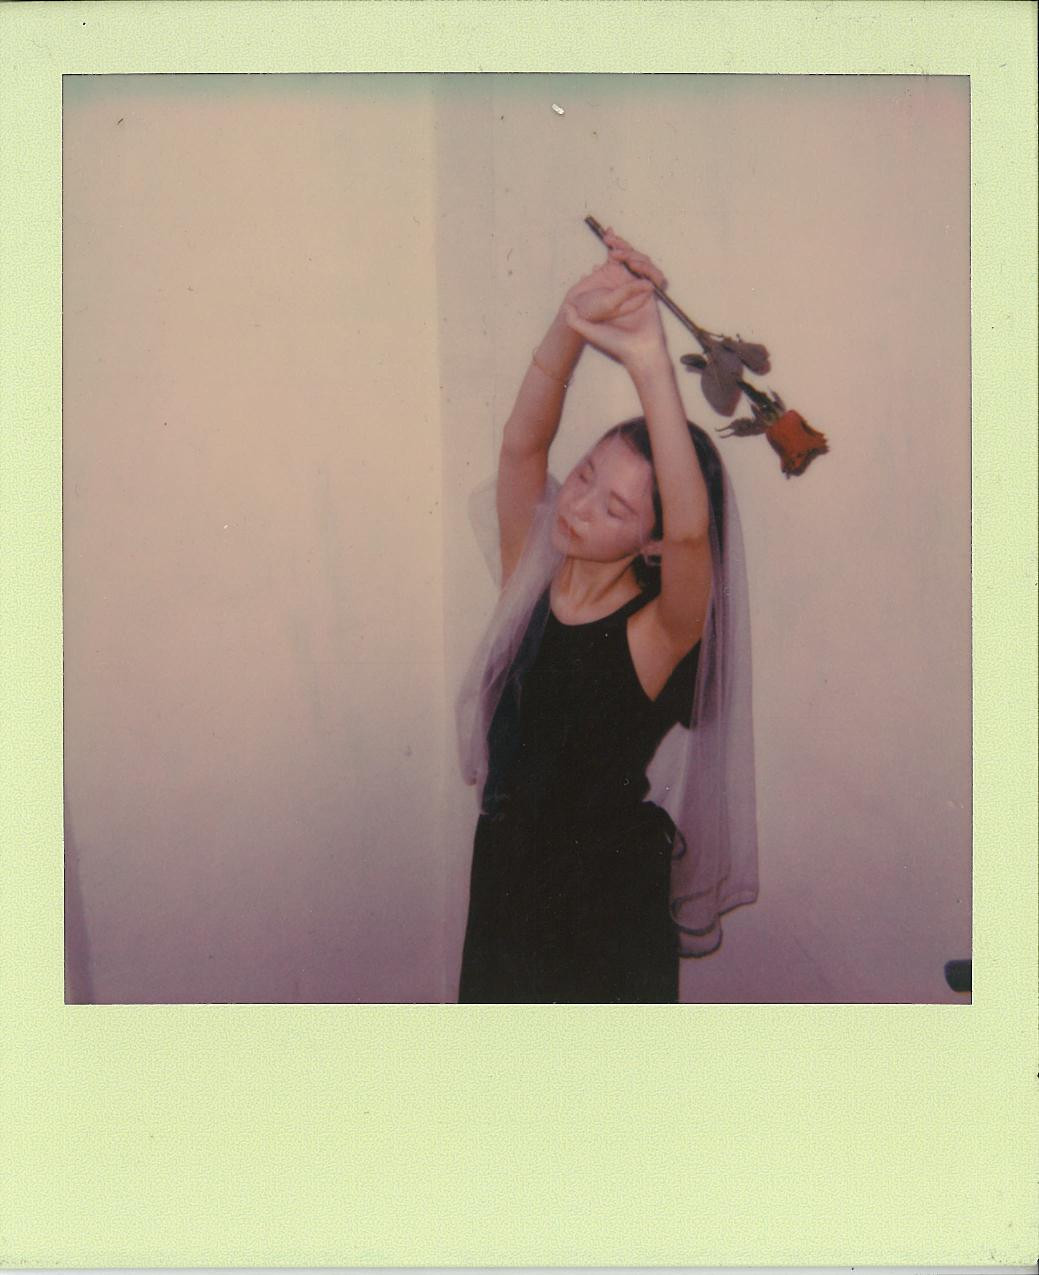 GRACE - POLAROID 600